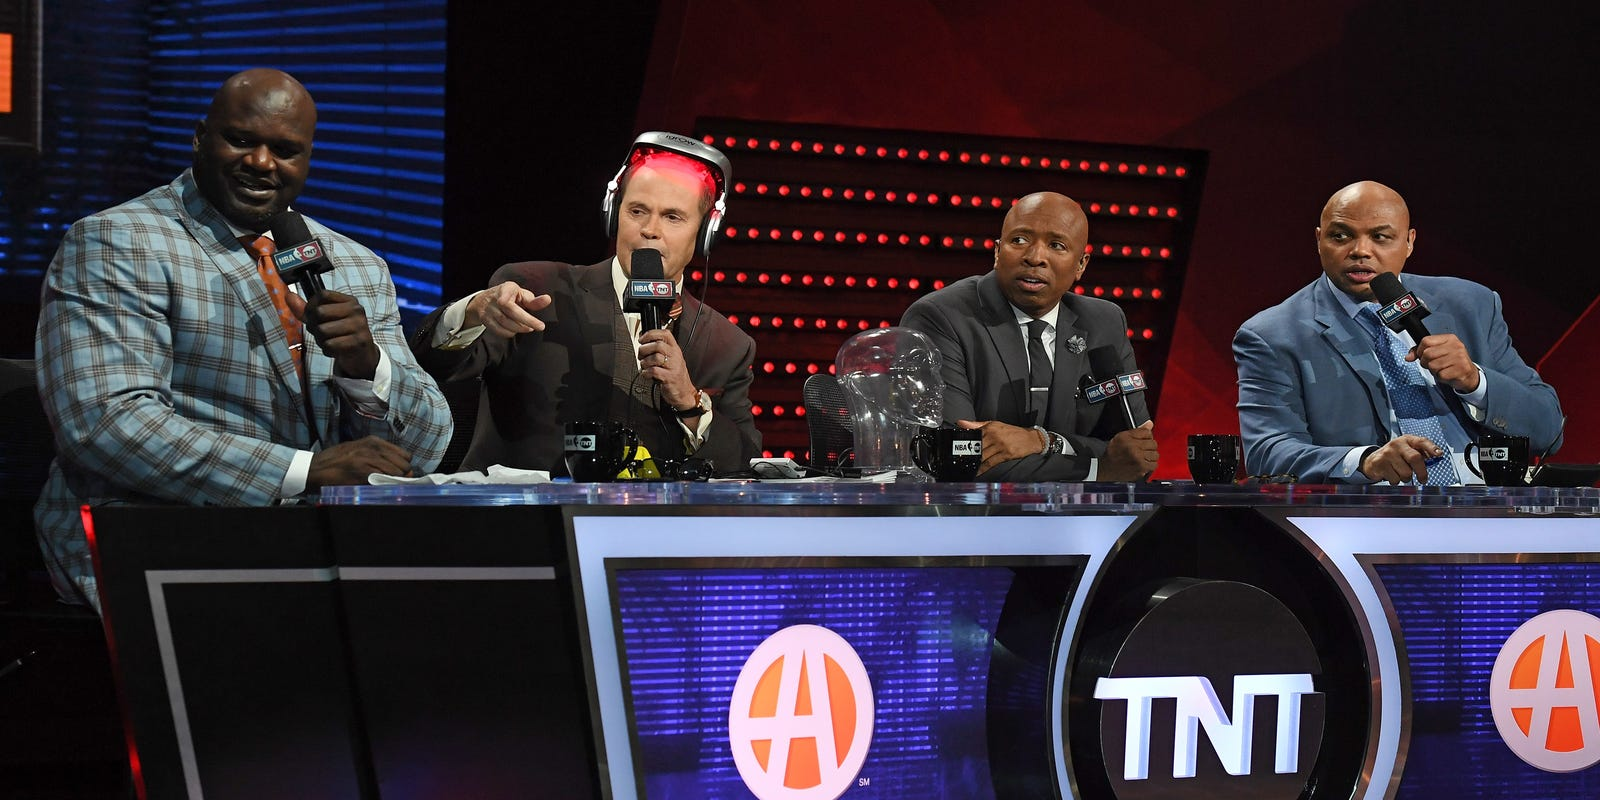 'We can never be recreated or reduplicated': Kenny Smith on success of 'Inside the NBA'